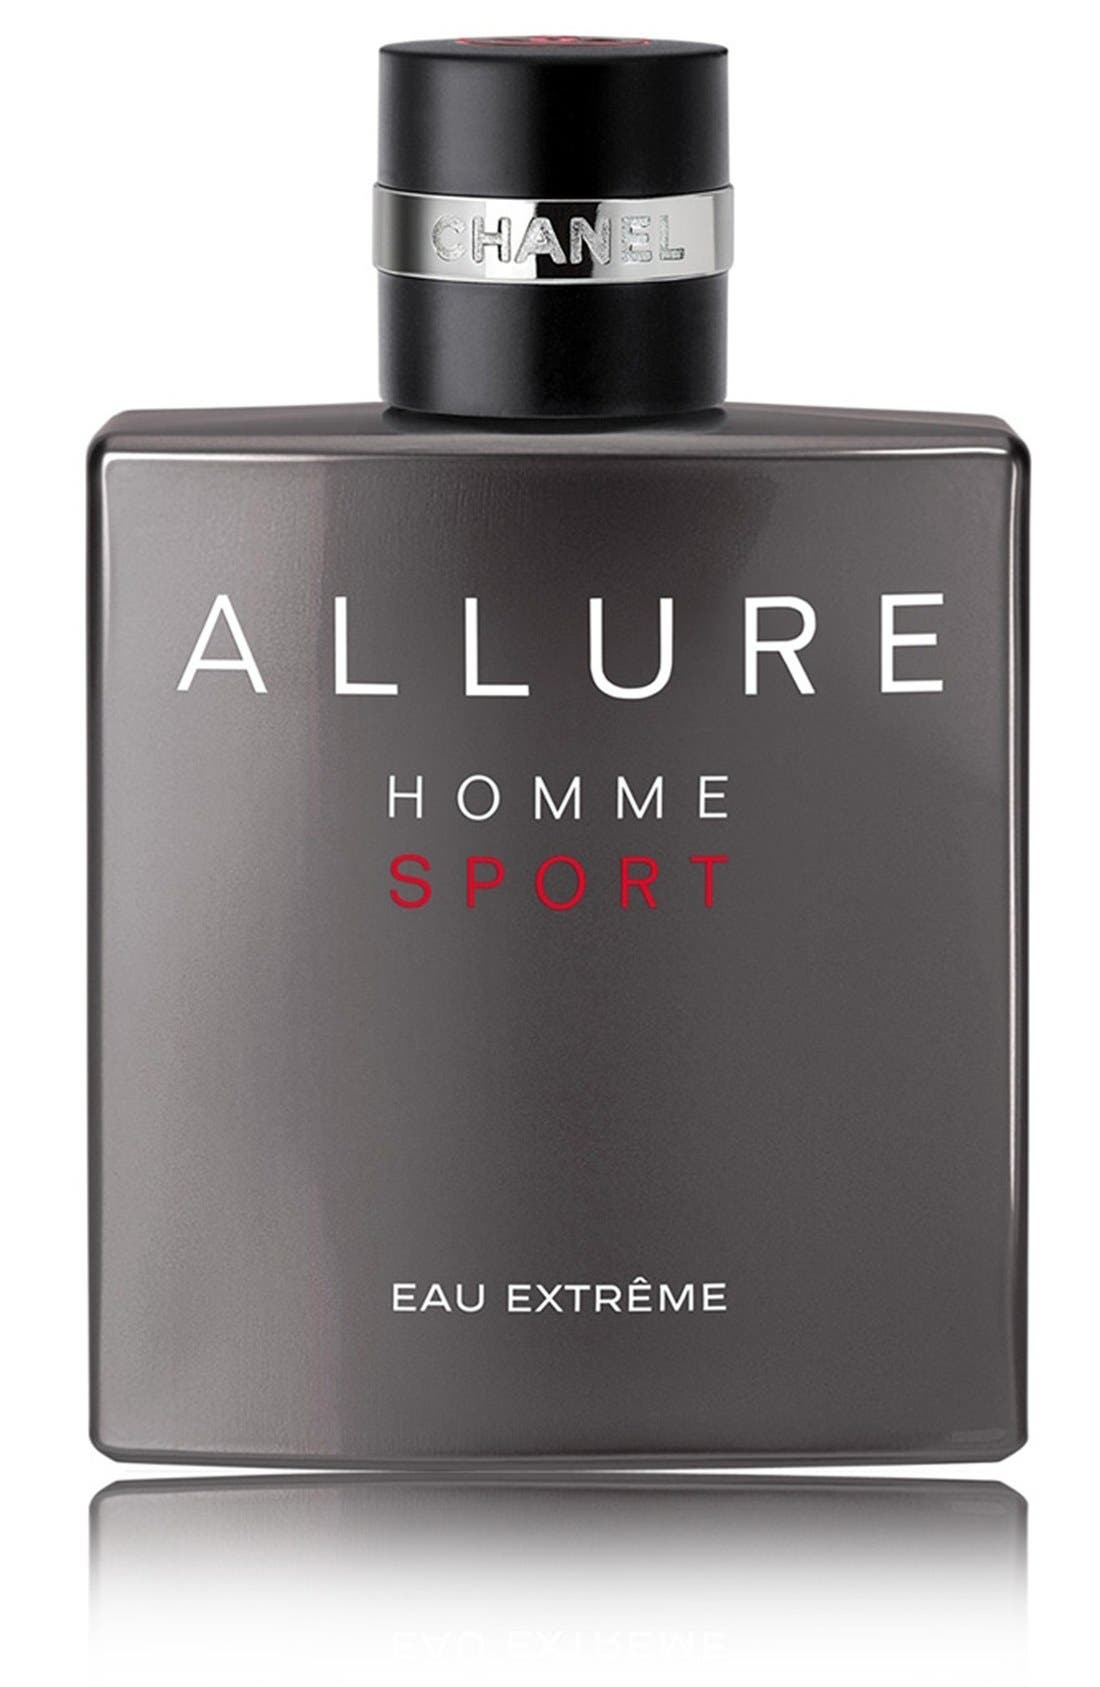 CHANEL ALLURE HOMME SPORT EAU EXTREME Eau de Parfum, Main, color, NOL COLOR